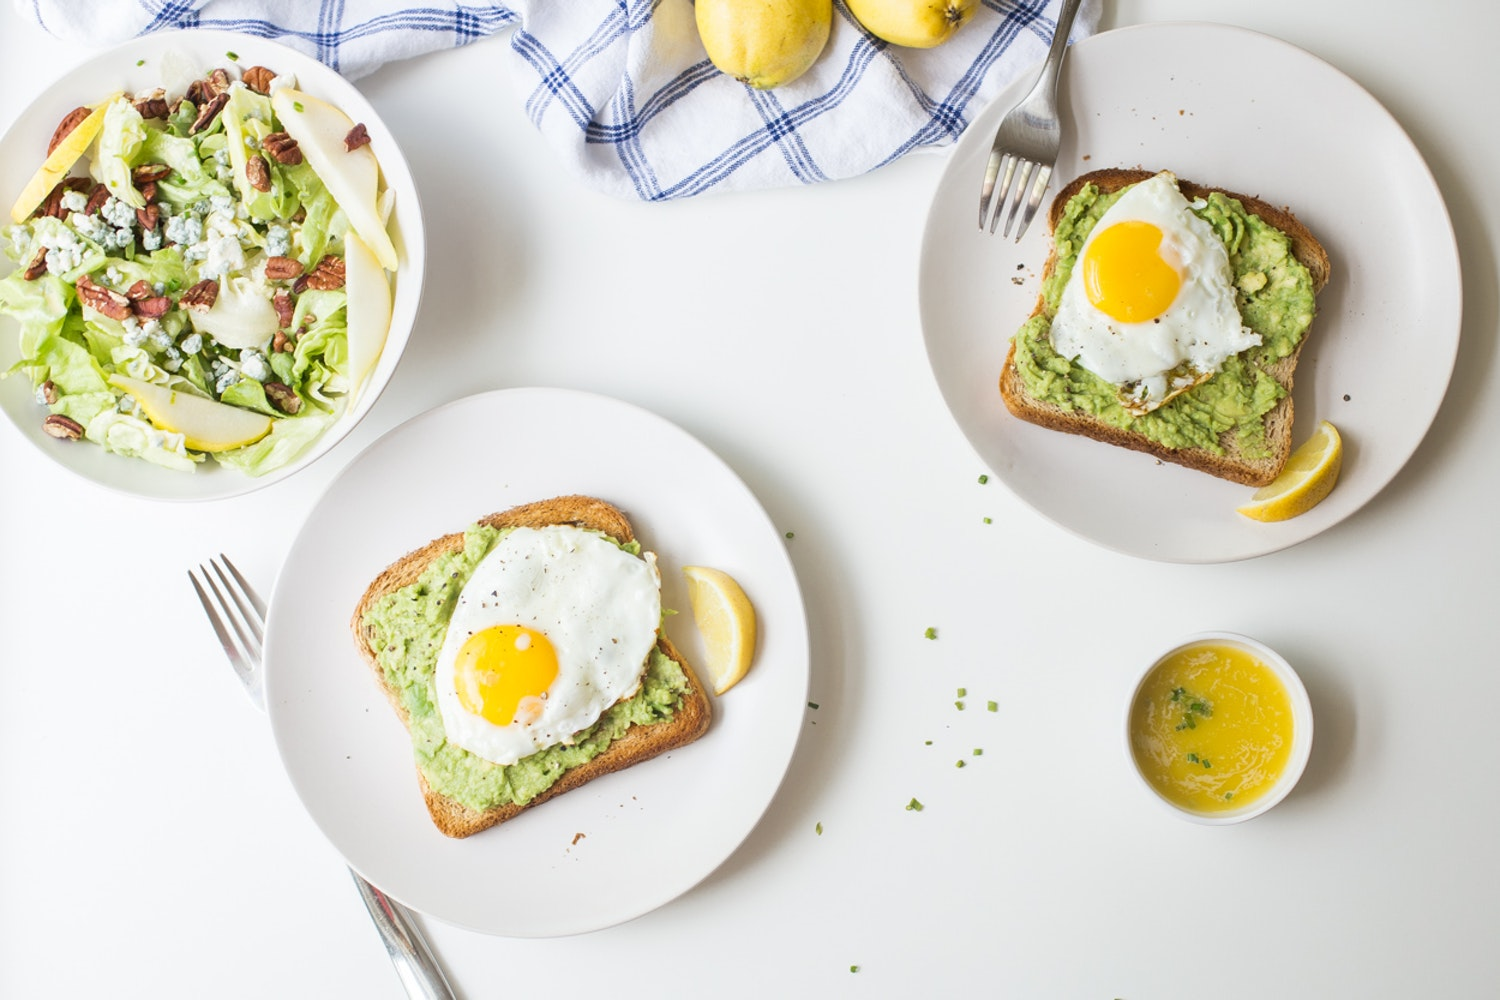 20161010 fried egg avocado toast nm 1.jpg?ixlib=rails 2.1